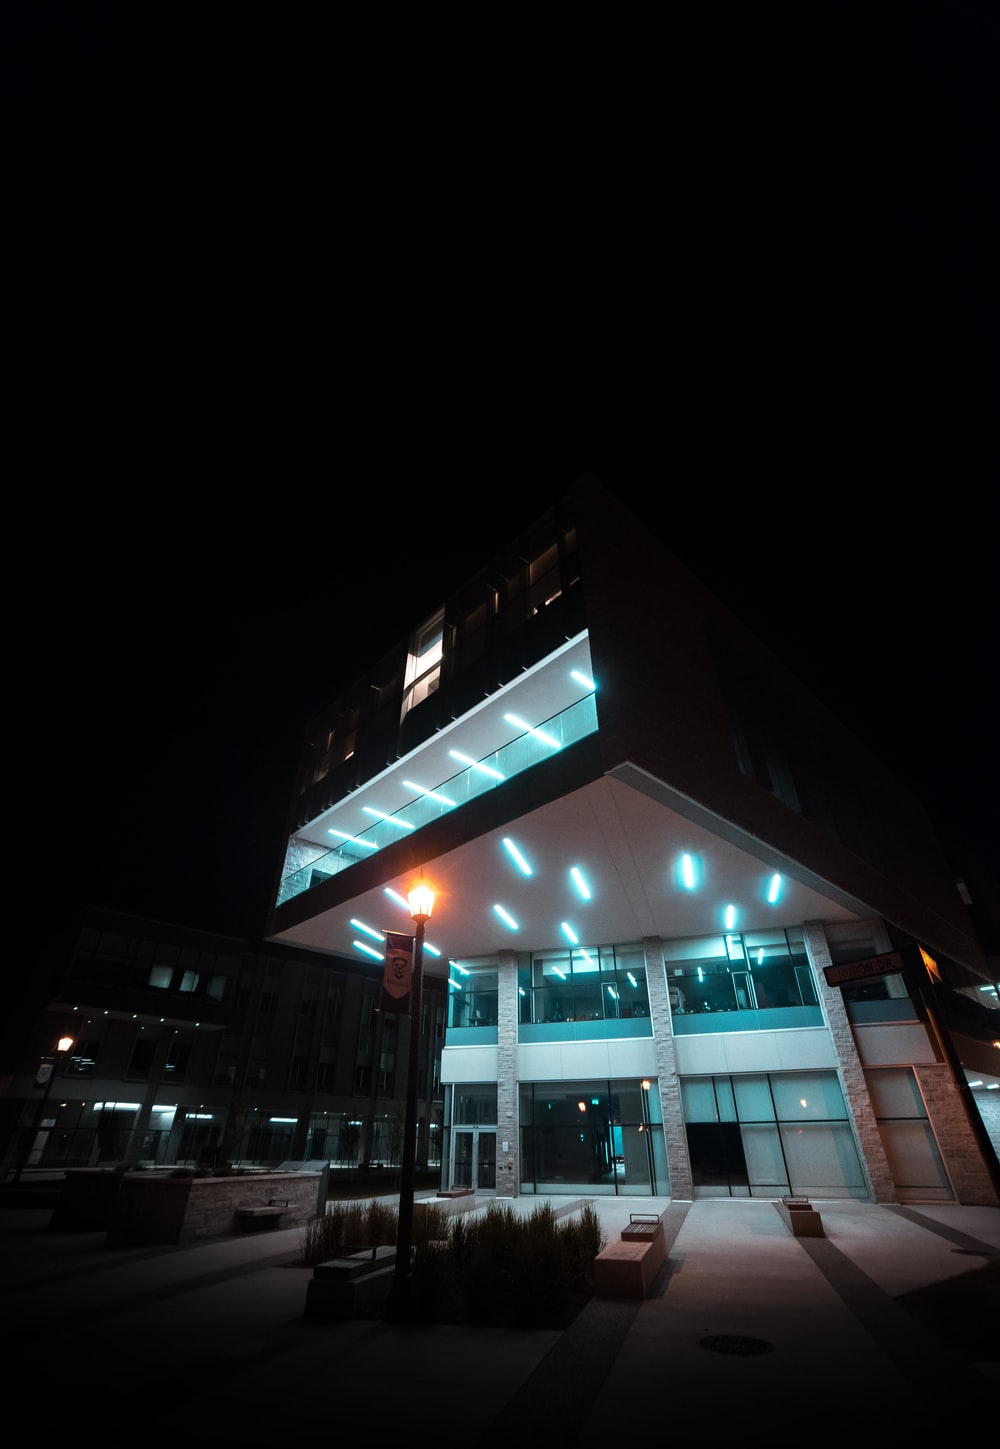 exterior of a multi-storey building during nighttime